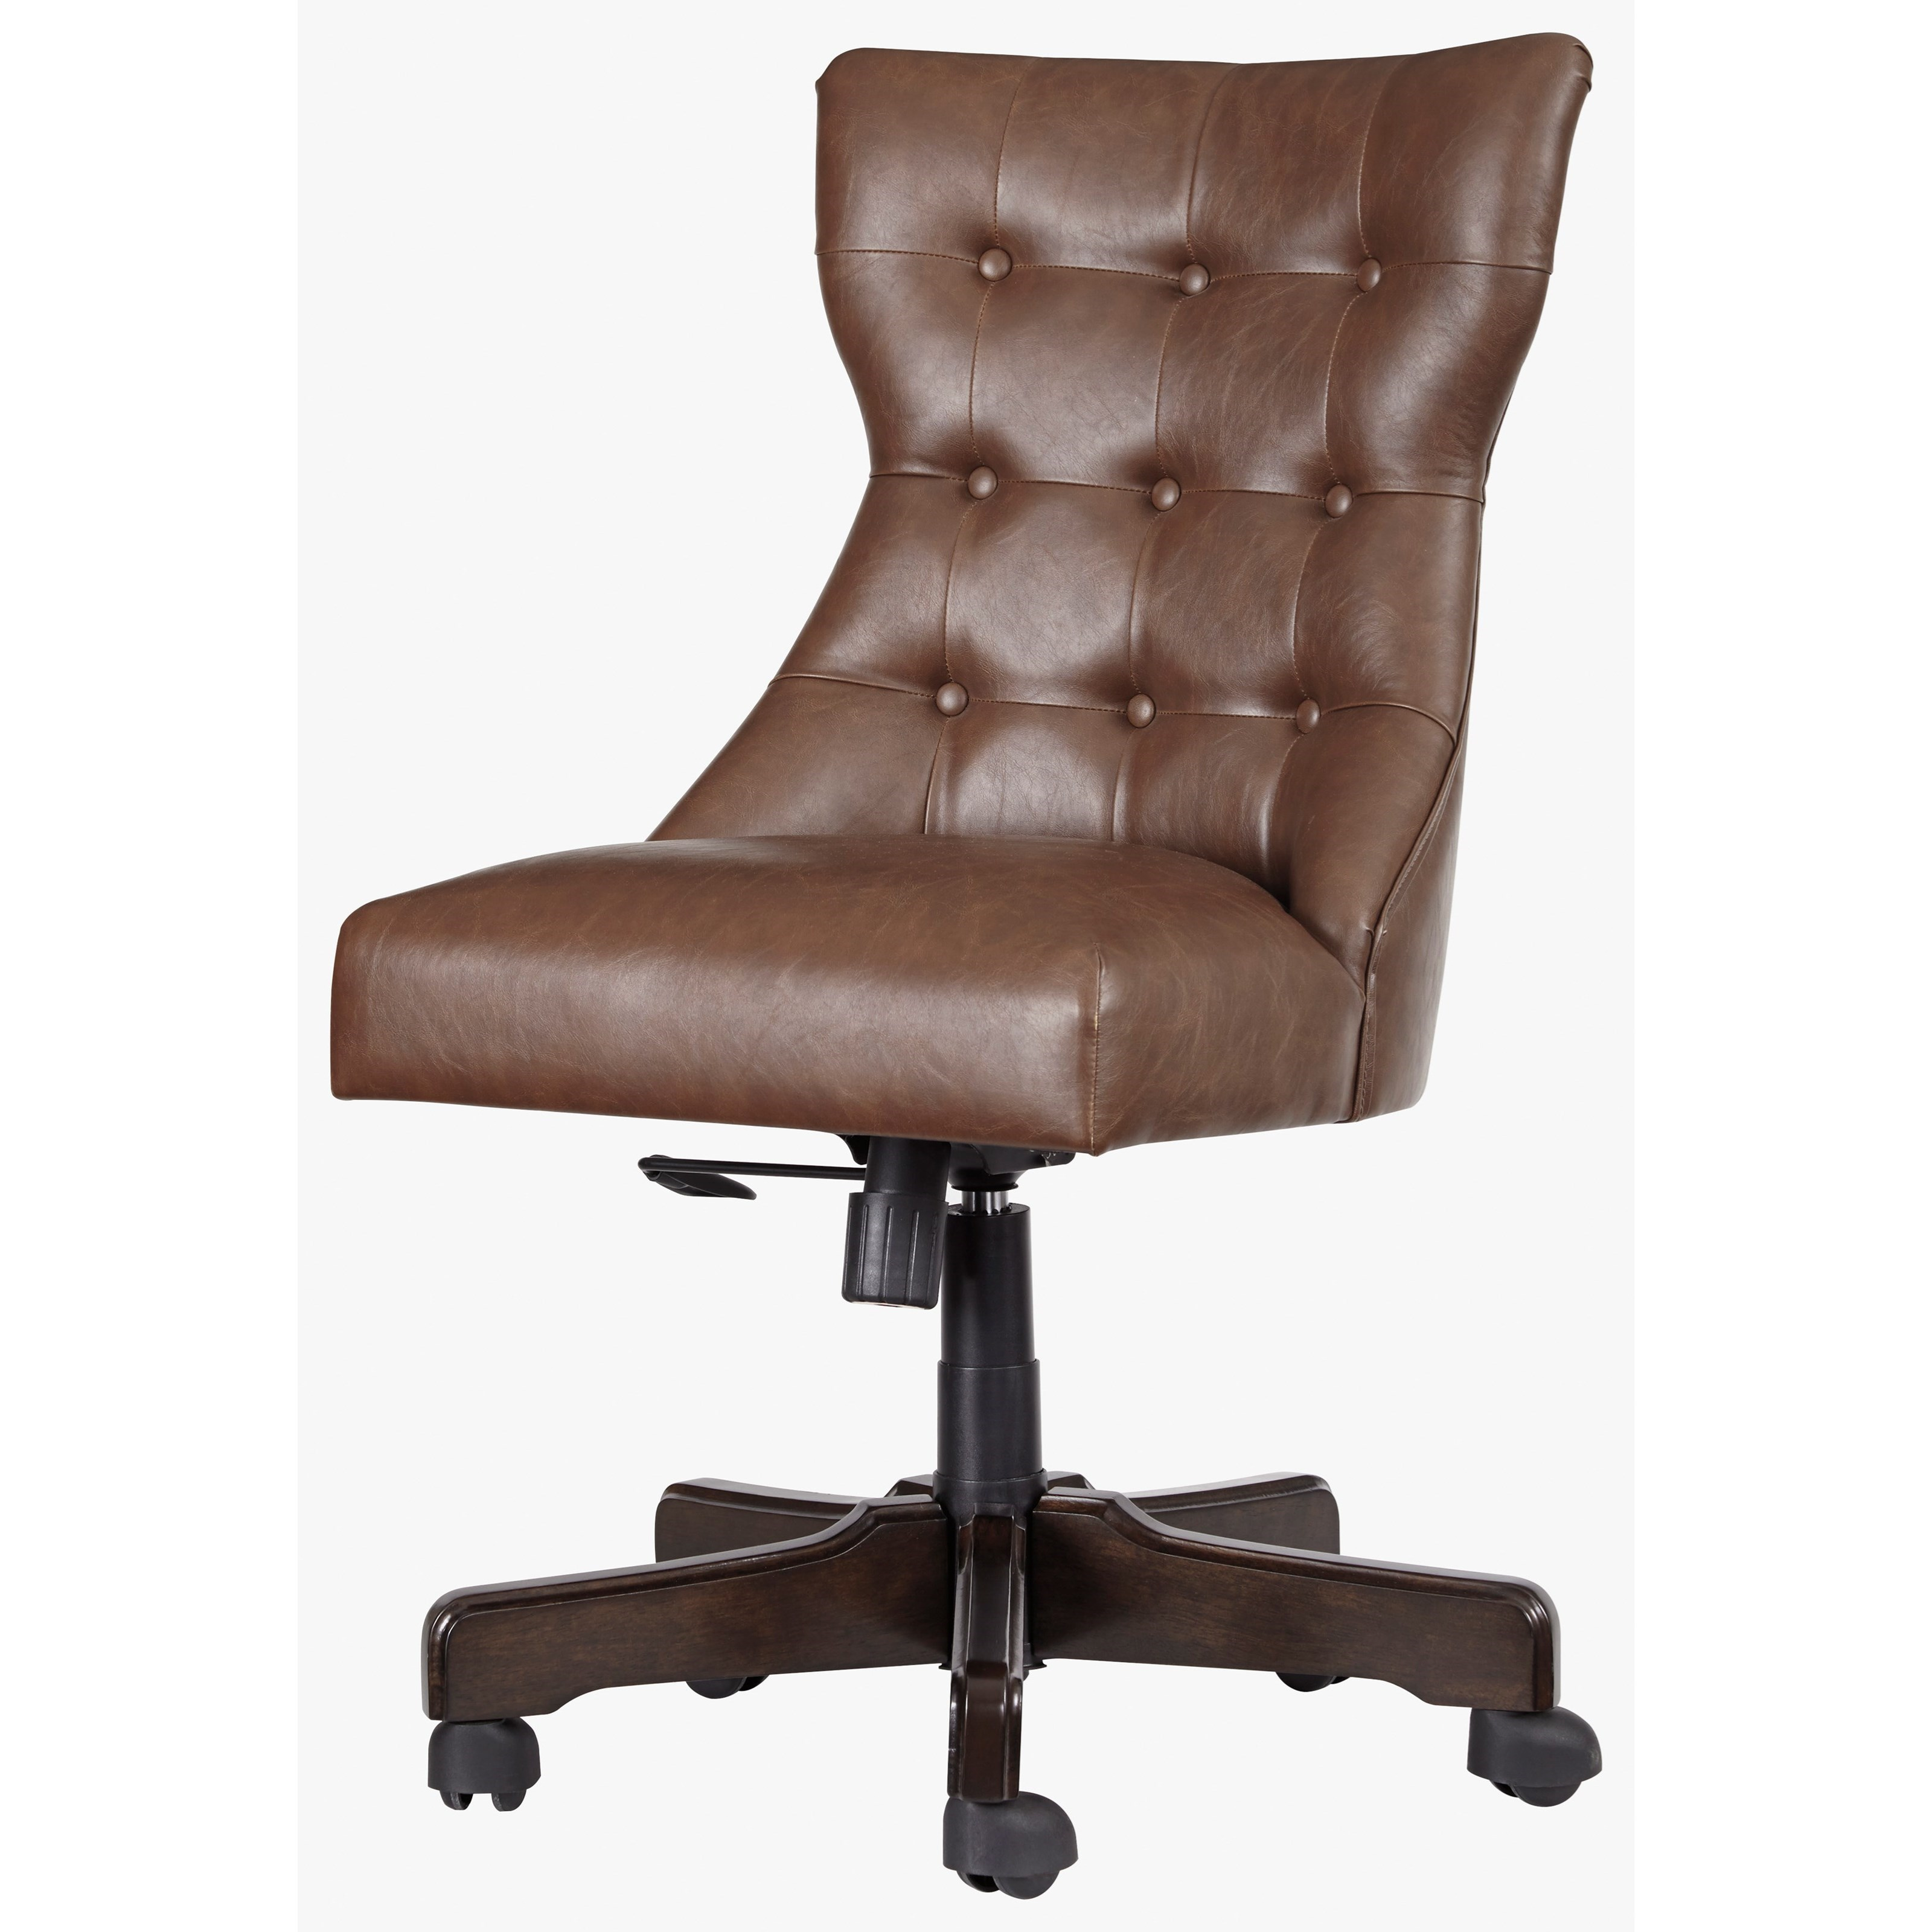 Office Chair Program Home Office Swivel Desk Chair by Signature Design by Ashley at Lapeer Furniture & Mattress Center